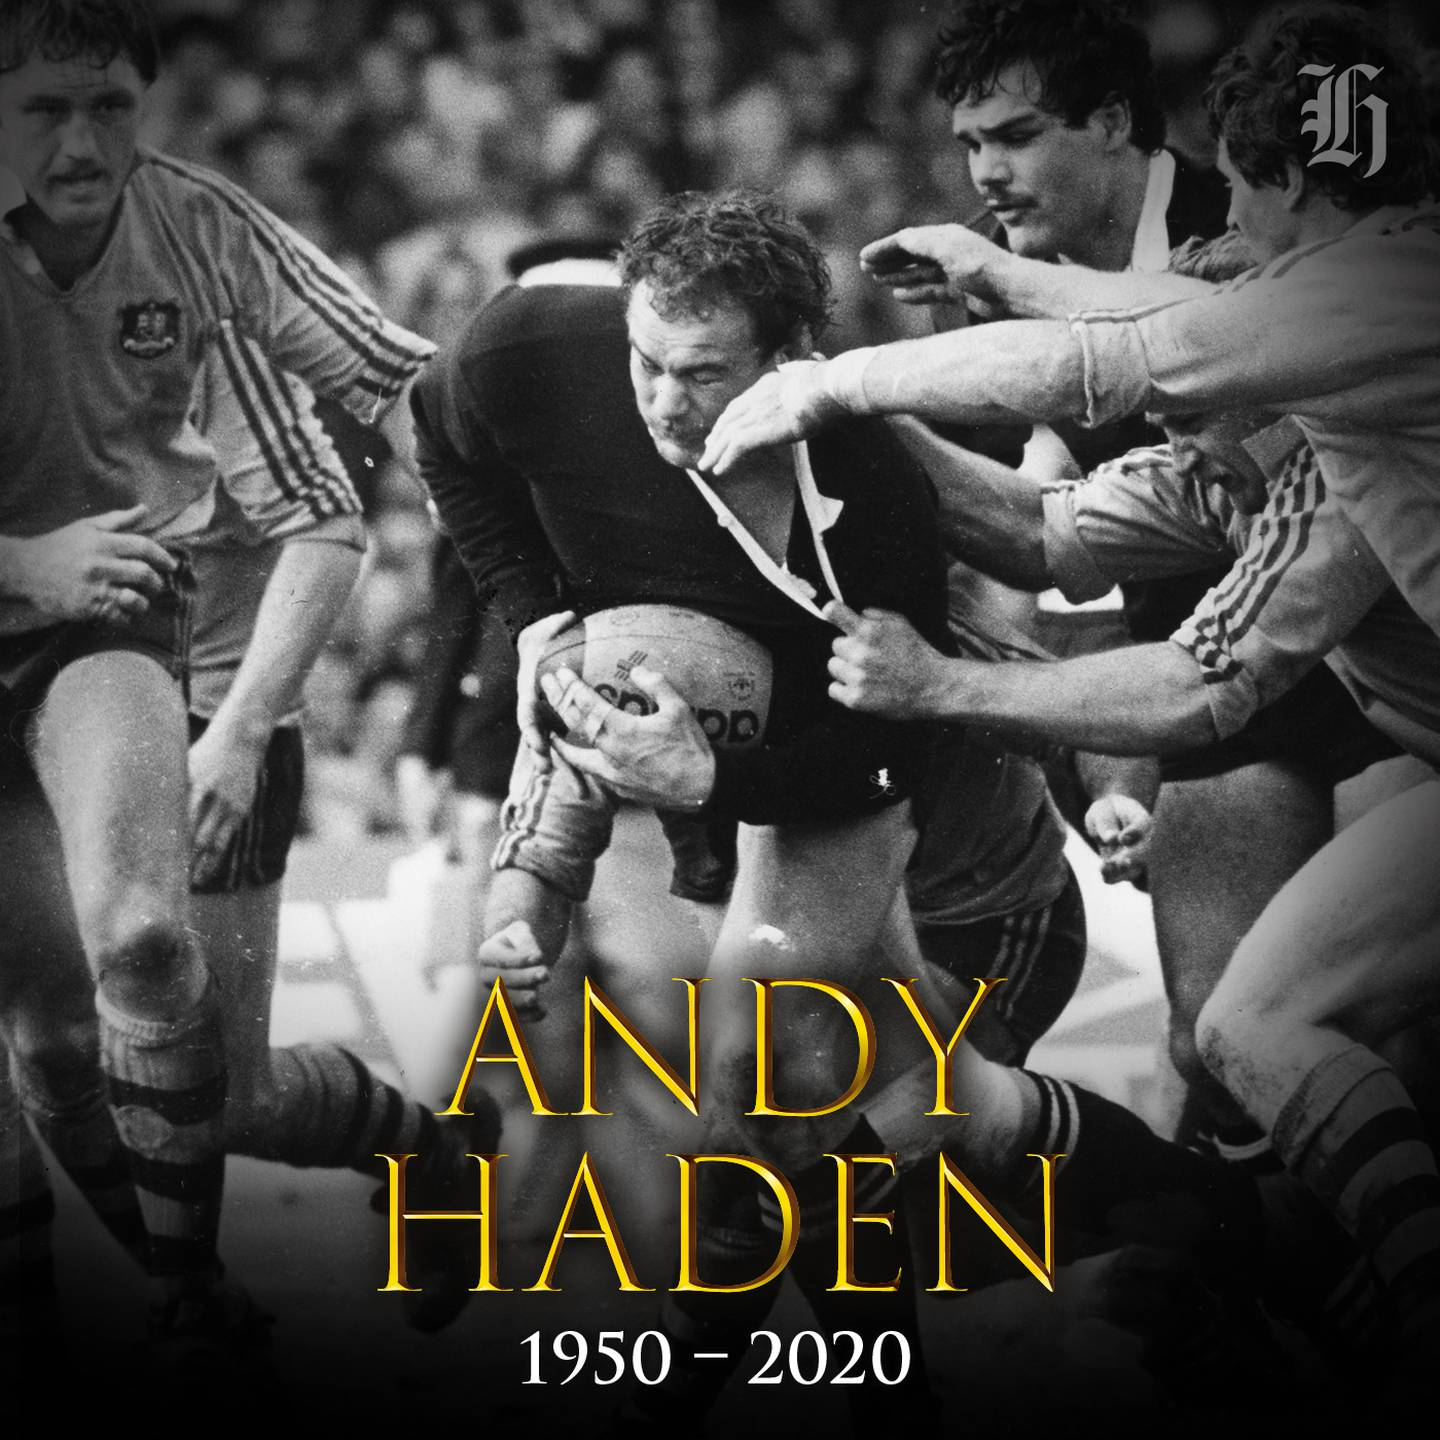 Andy Haden has died aged 69. Image: NZ Herald